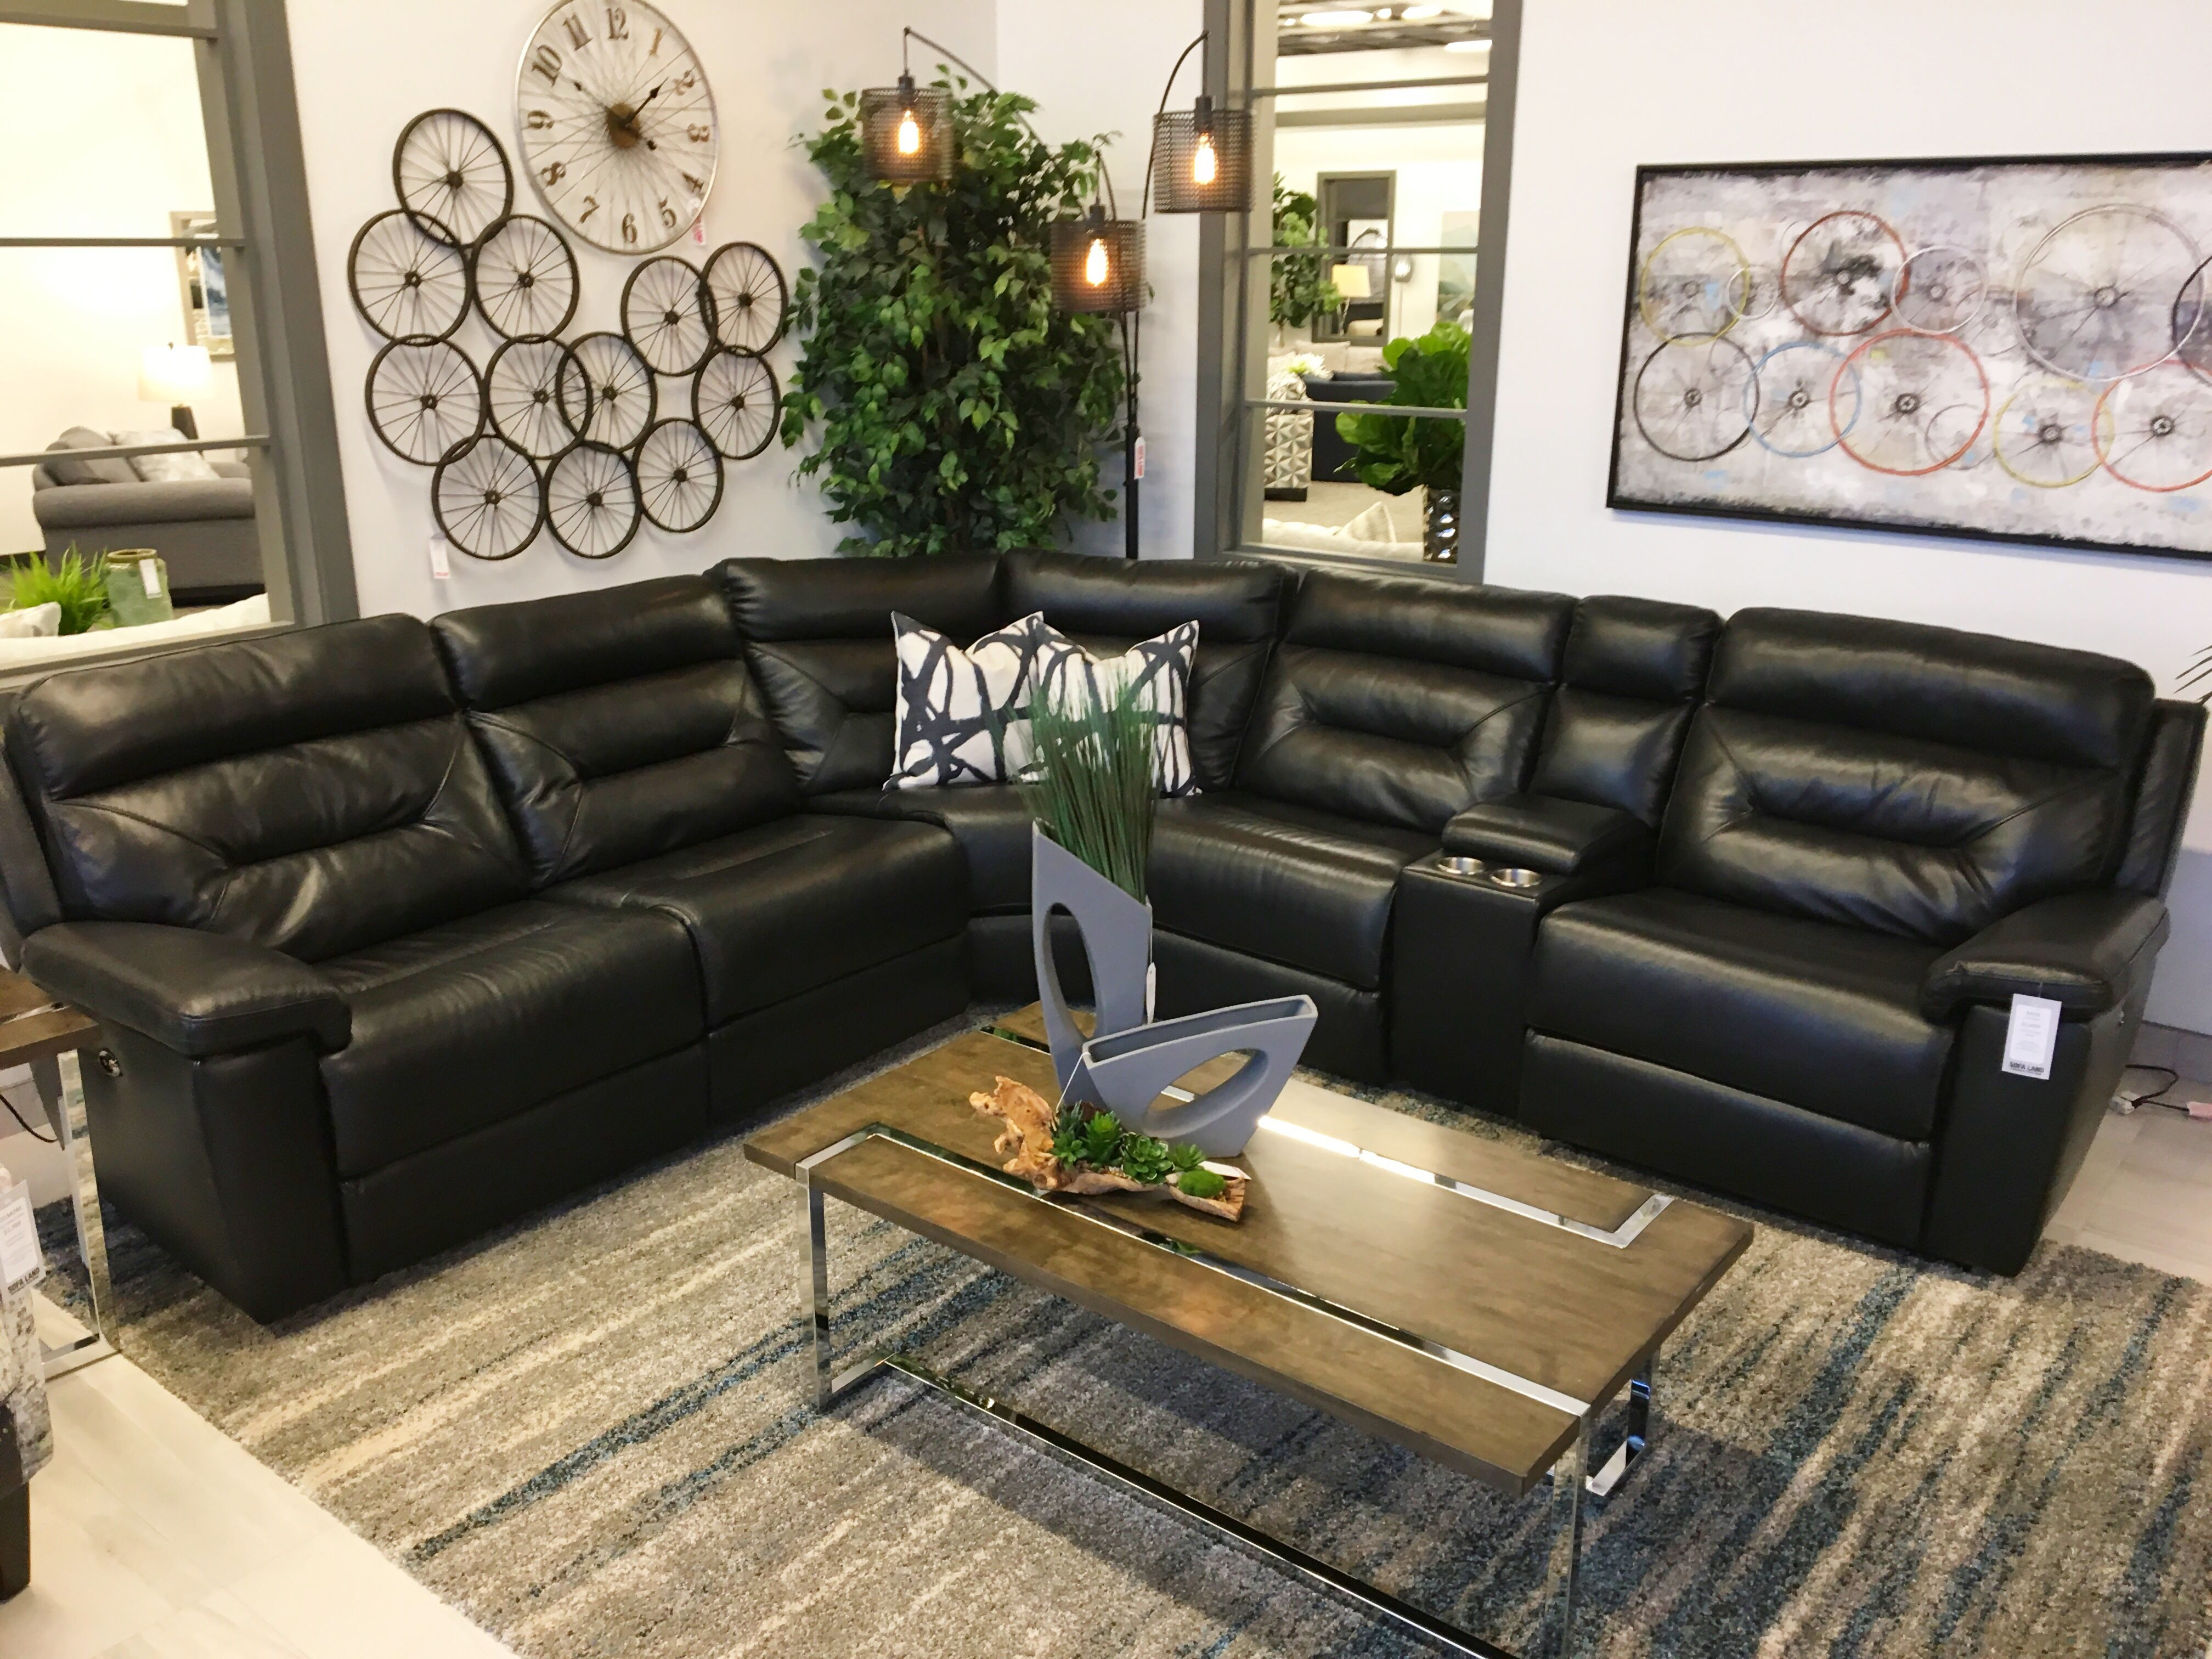 Kade Living Recline In Style With Our Kade Power Reclining Sectional This